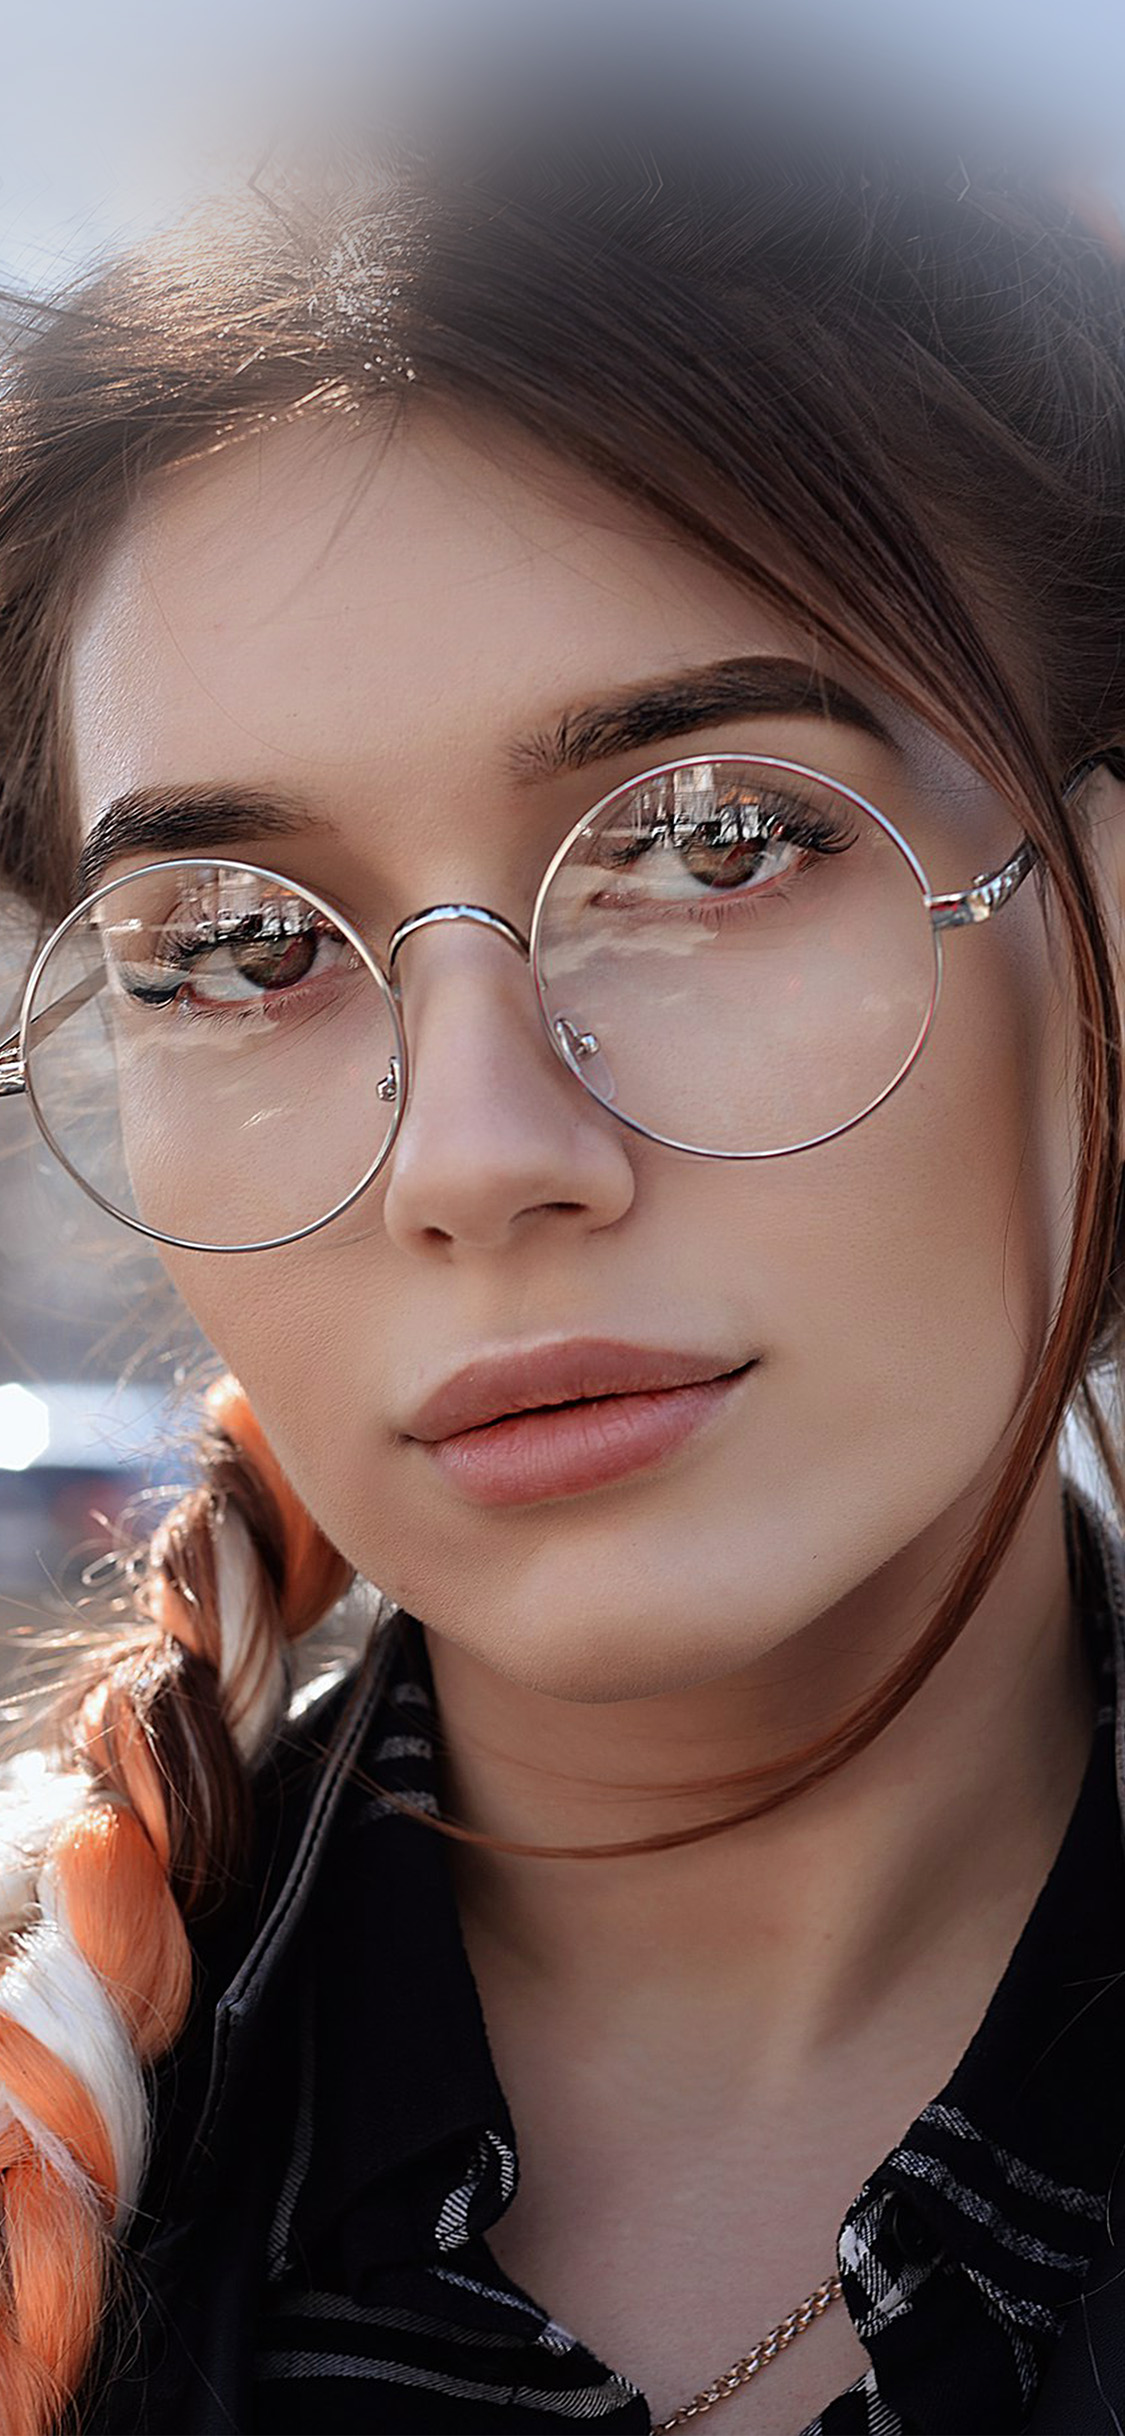 iPhonexpapers.com-Apple-iPhone-wallpaper-hp49-dua-lipa-girl-glasses